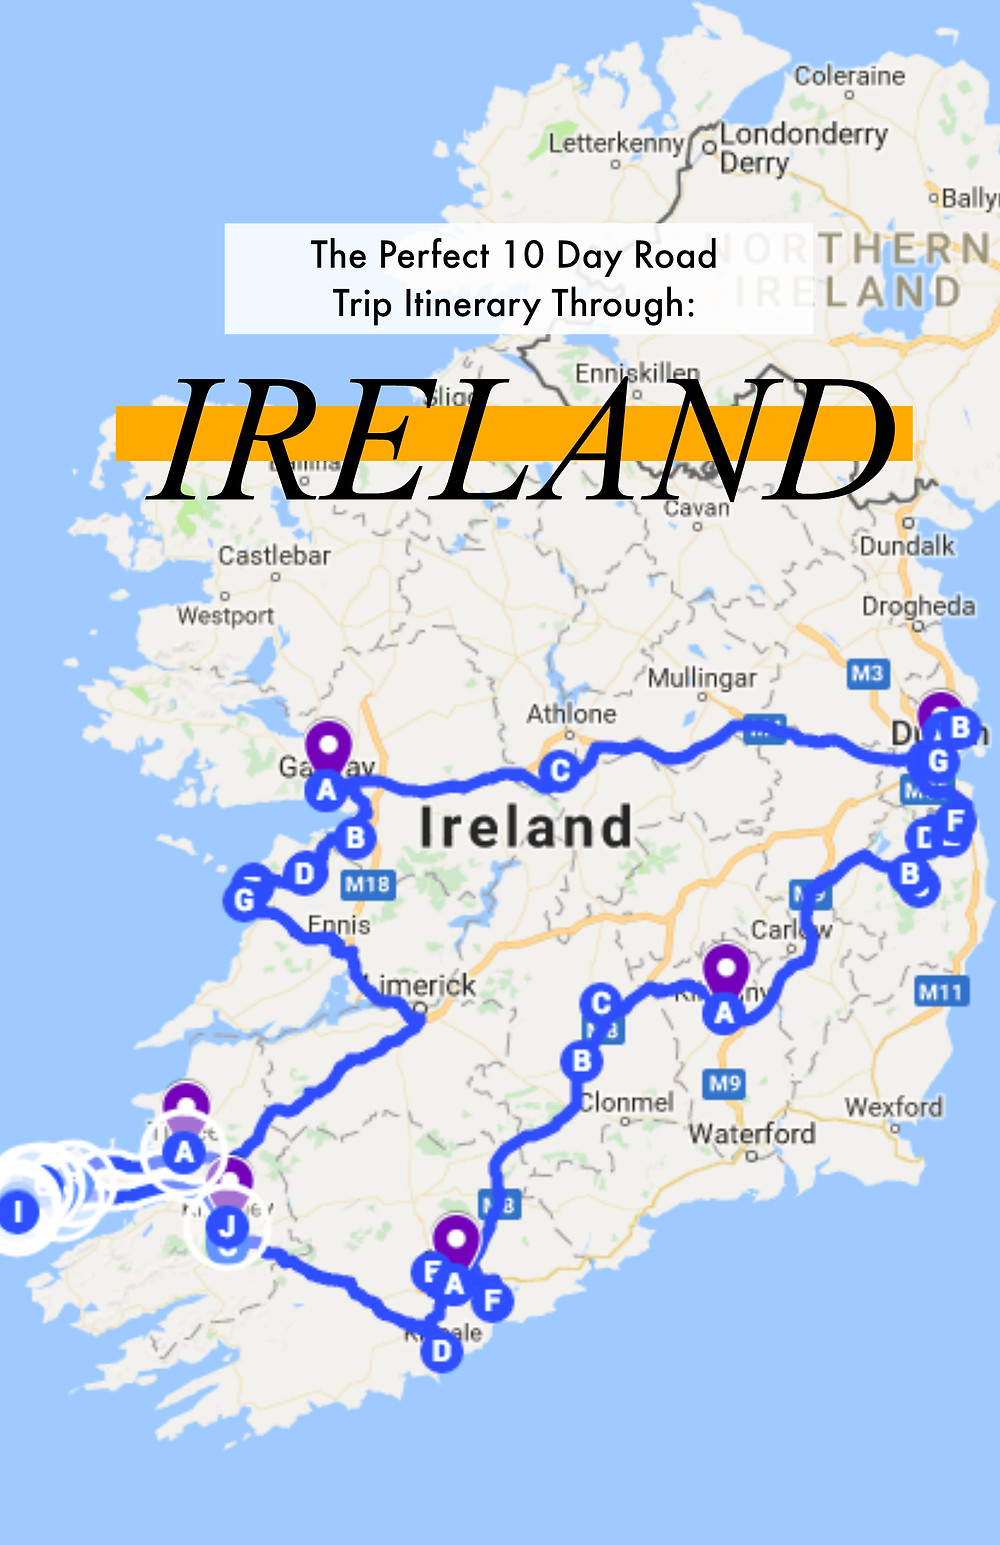 The perfect 10 day road trip itinerary through Ireland